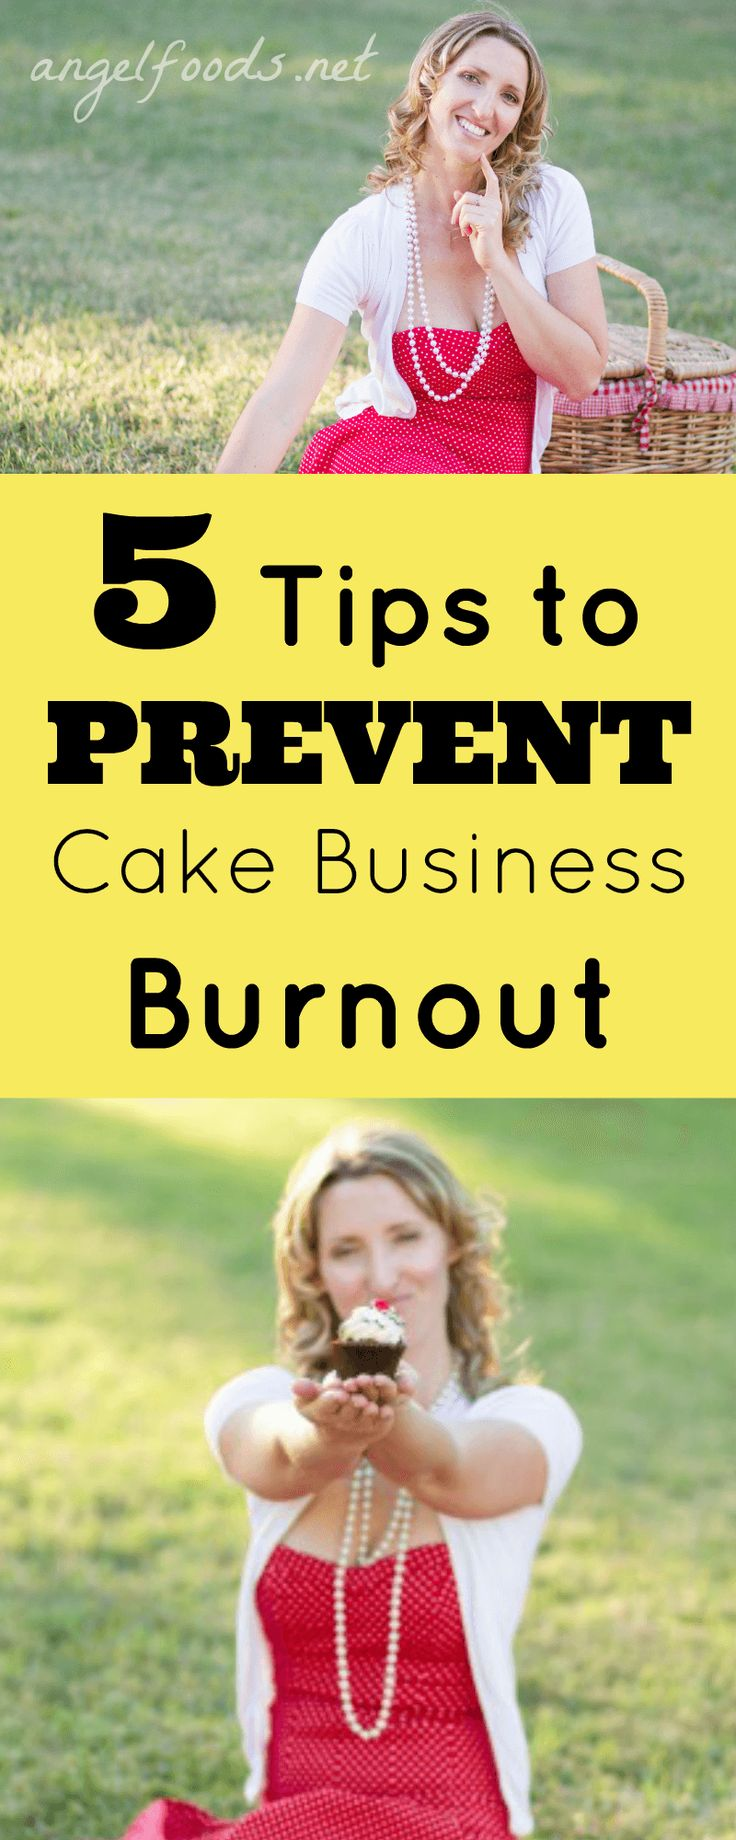 5 tips to prevent cake business burnout | http://angelfoods.net/5-tips-on-preventing-burnout/